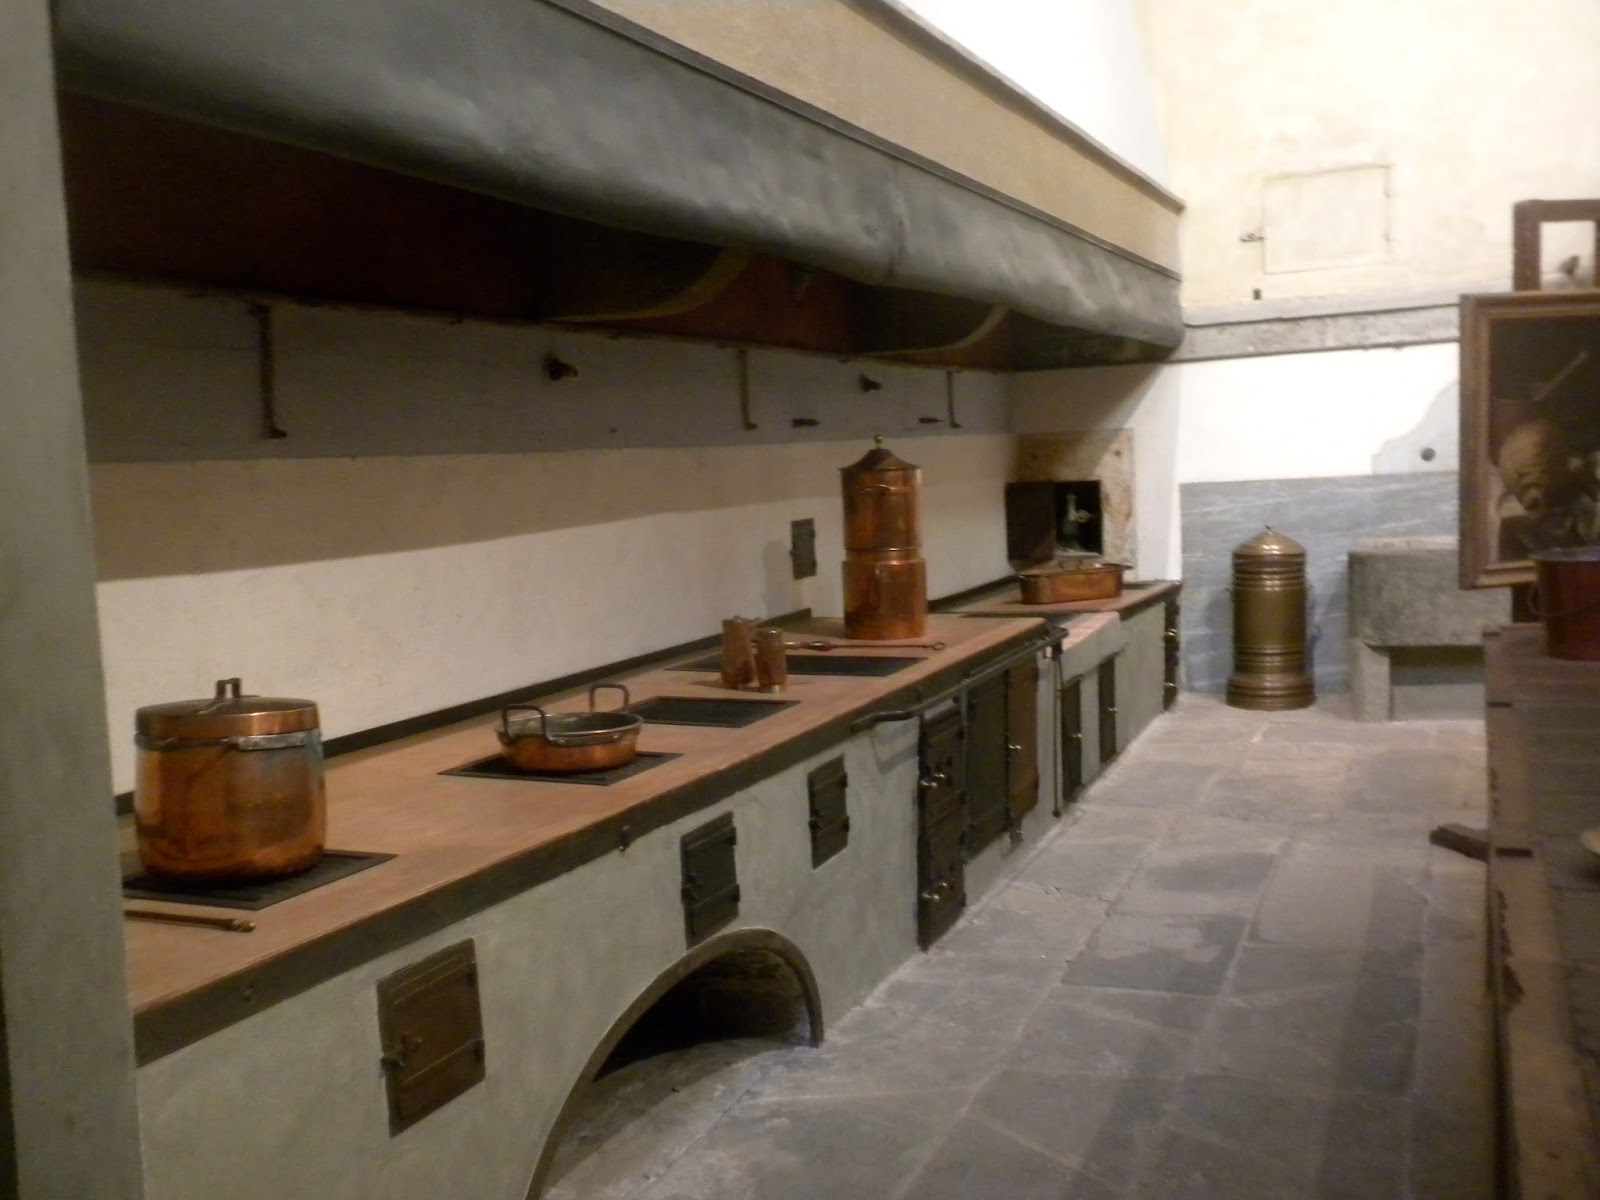 From a Tuscan Hillside: The Big Kitchen at the Pitti Palace